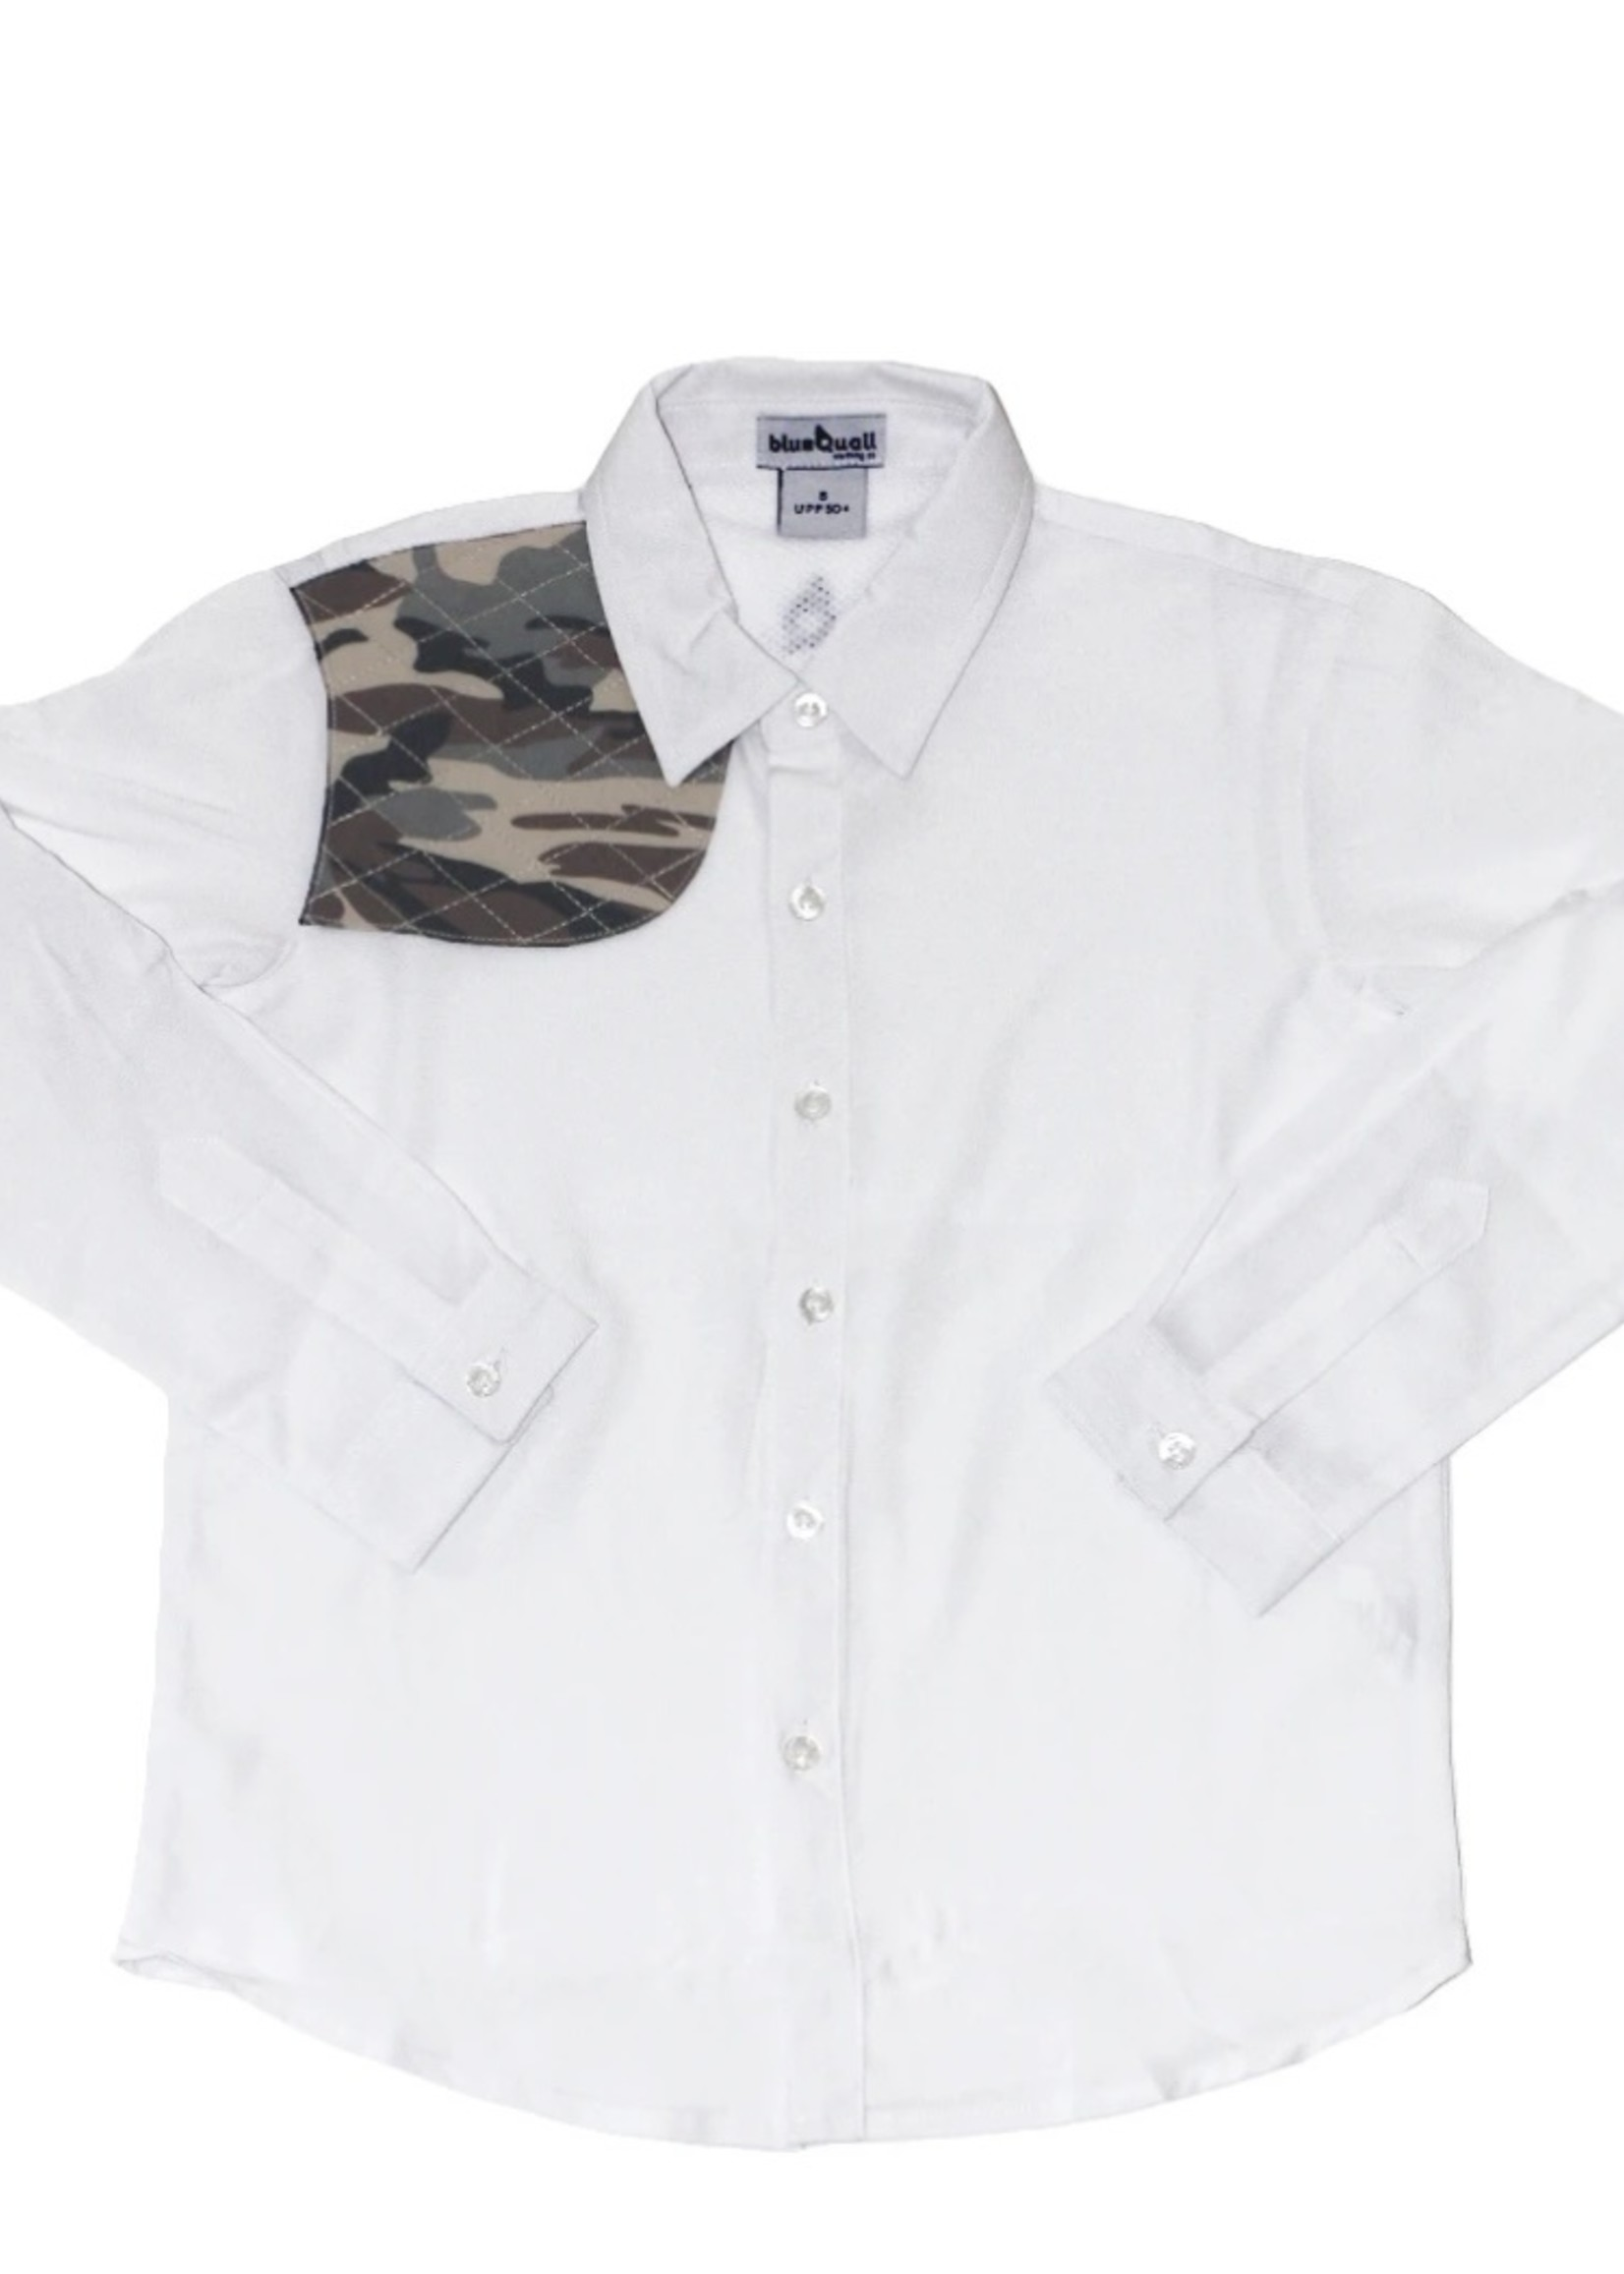 The Ranch Collection Long Sleeve - White w/Camo